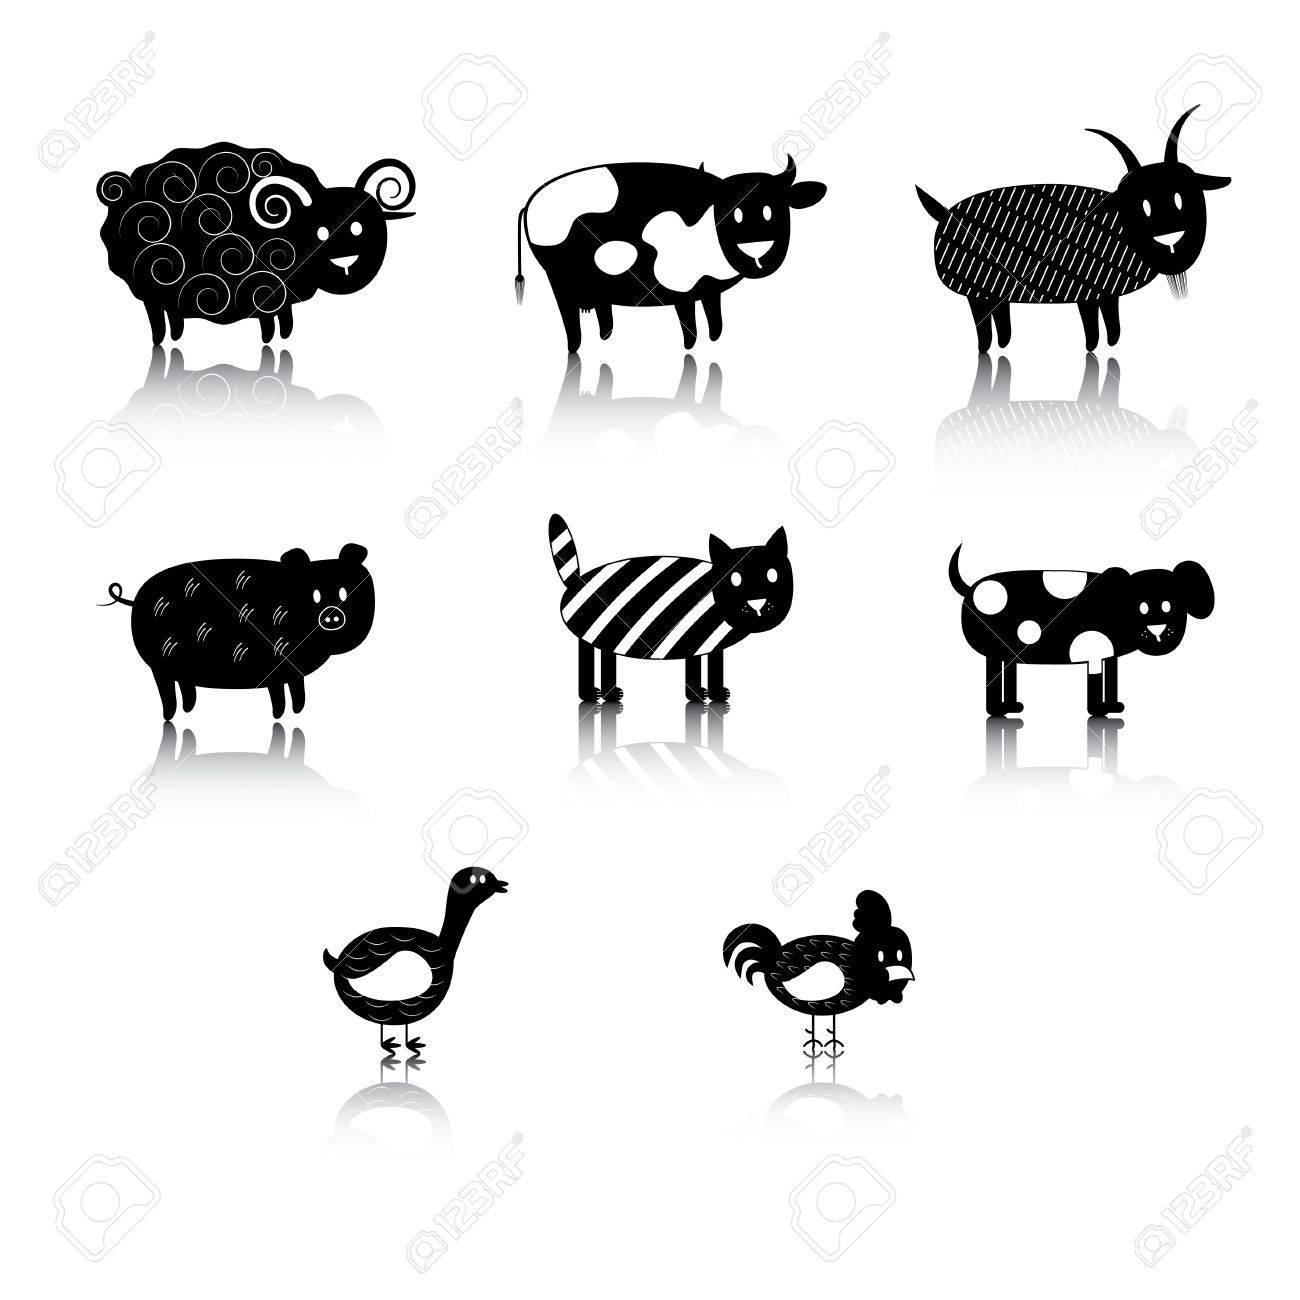 silhouette of farm animals. Stock Vector - 19658067